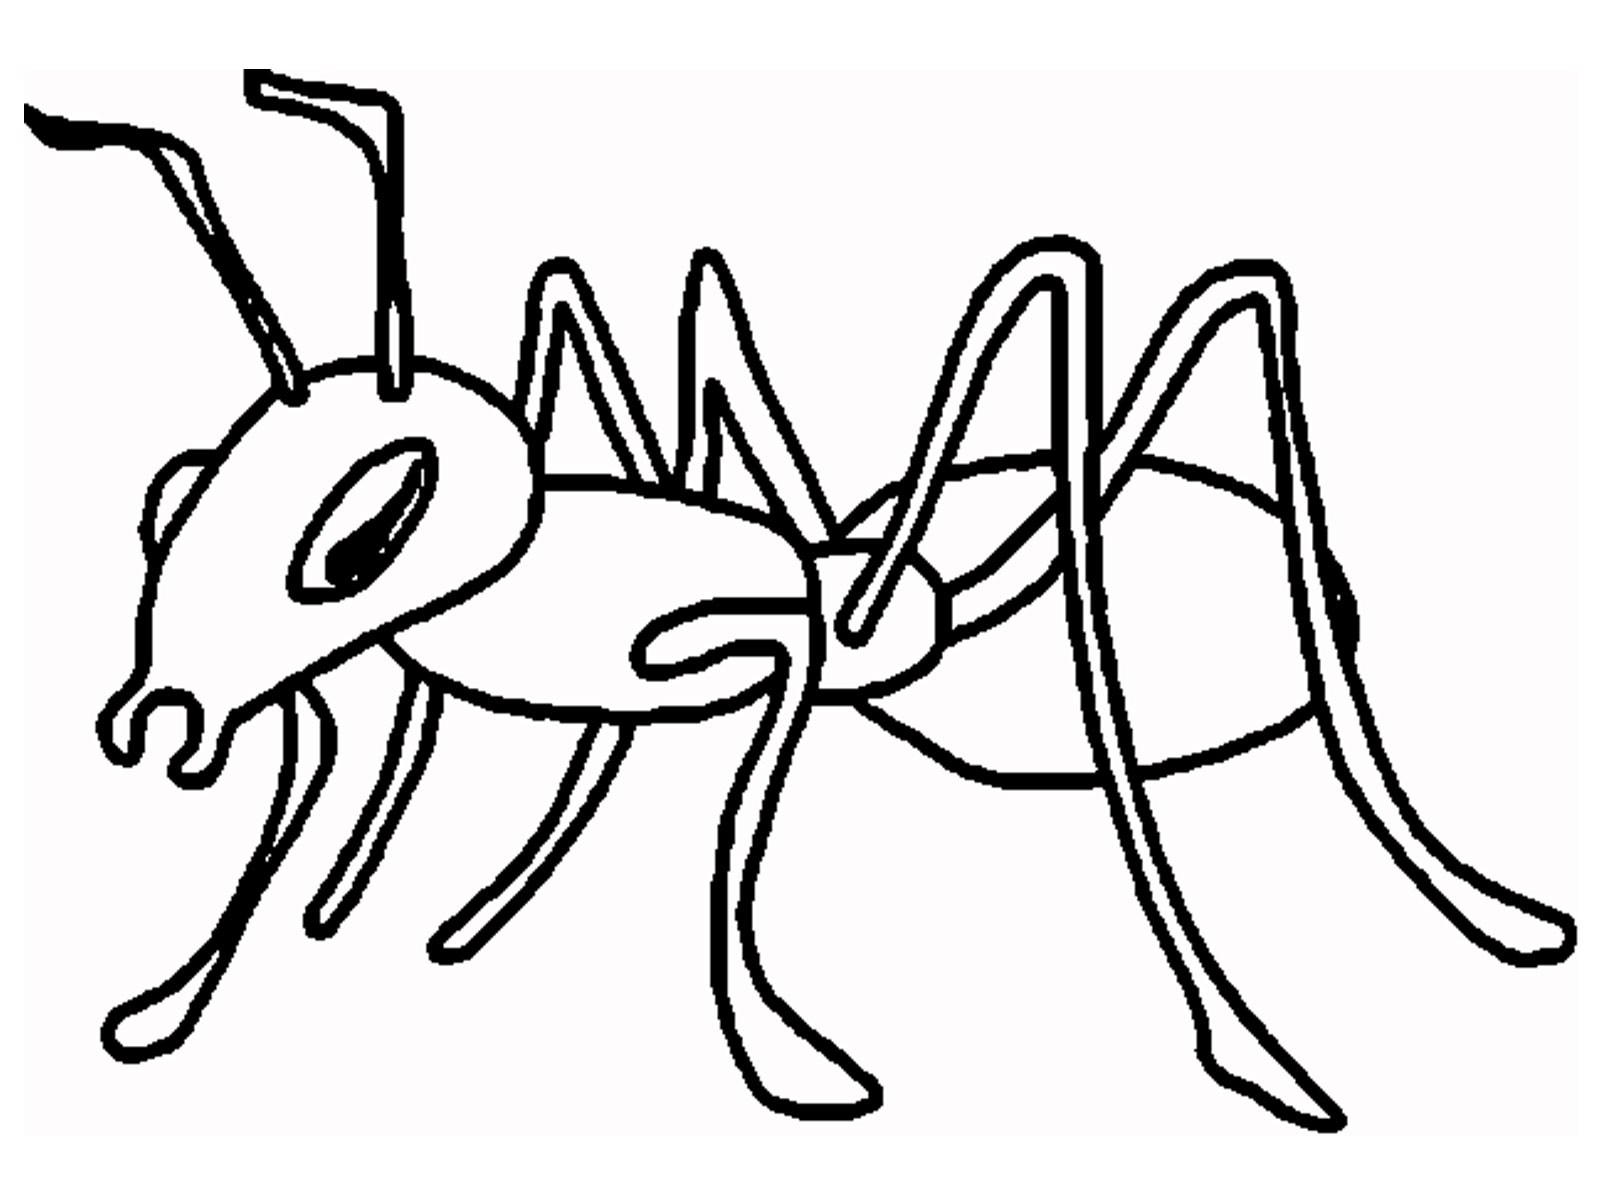 ant drawing for kids at getdrawings com free for personal use ant